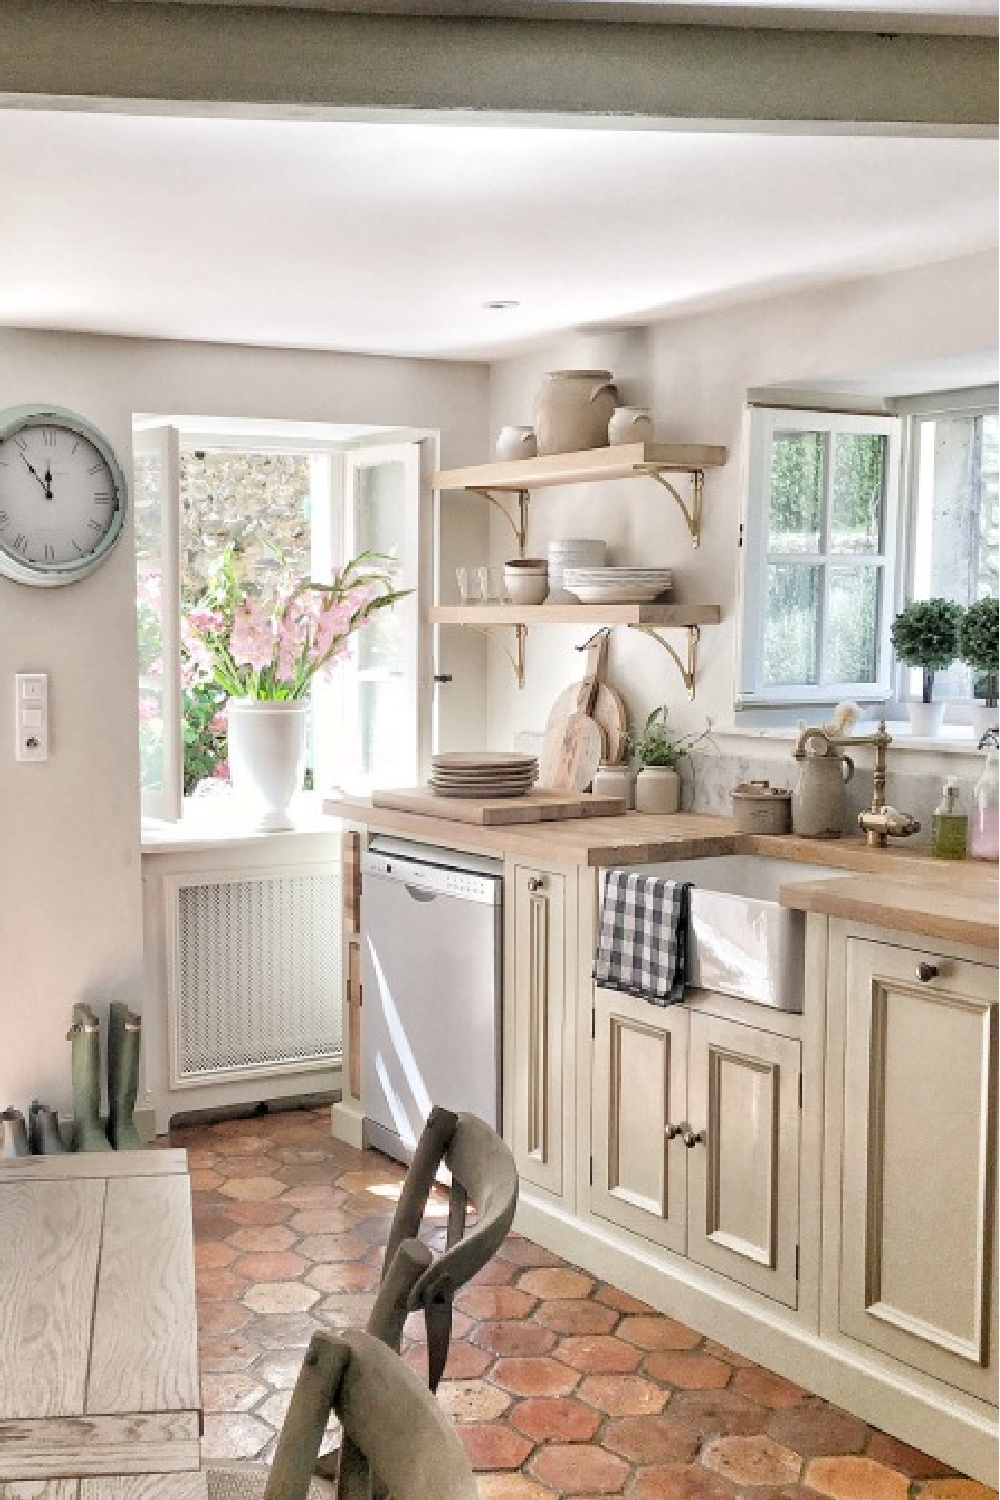 Kitchen in France with antique reclaimed hex tiles, putty cabinets, and farm sink. #frenchkitchen #frenchfarmhouse #countryfrench #kitchens #oldworldstyle #terracottatile #puttycabinets